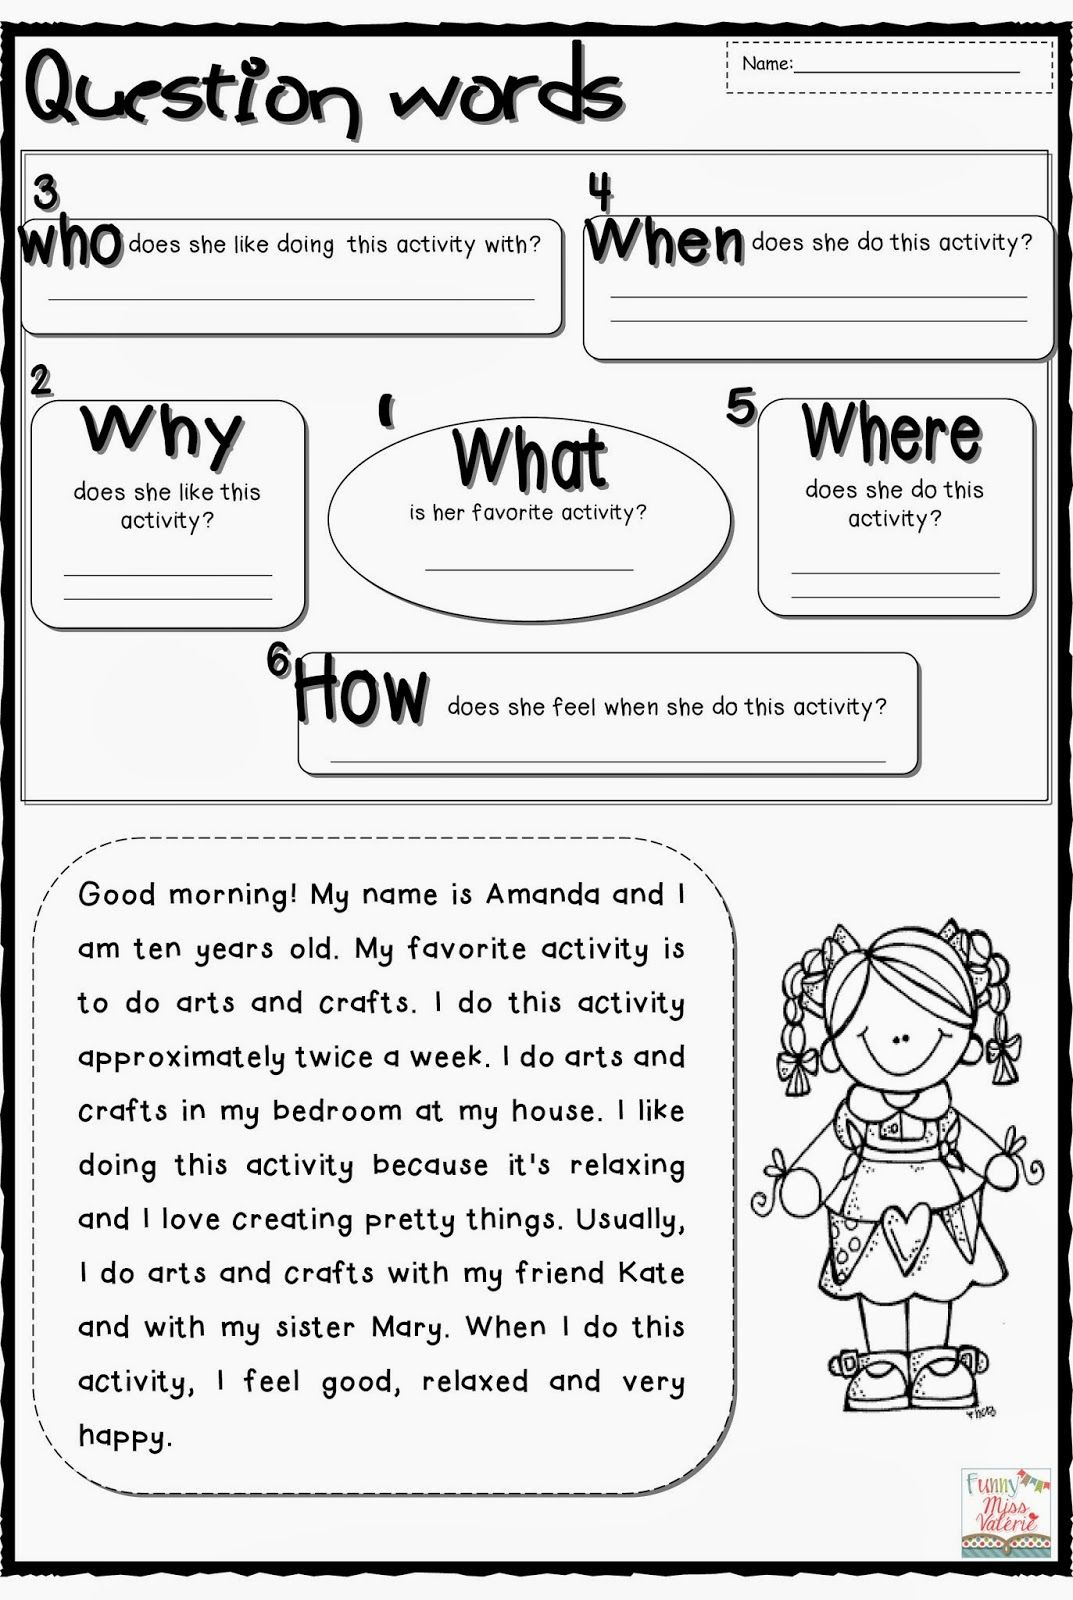 medium resolution of all-students-first-grade-worksheets-gallery-photos-my-favorite-activity…    Reading comprehension lessons